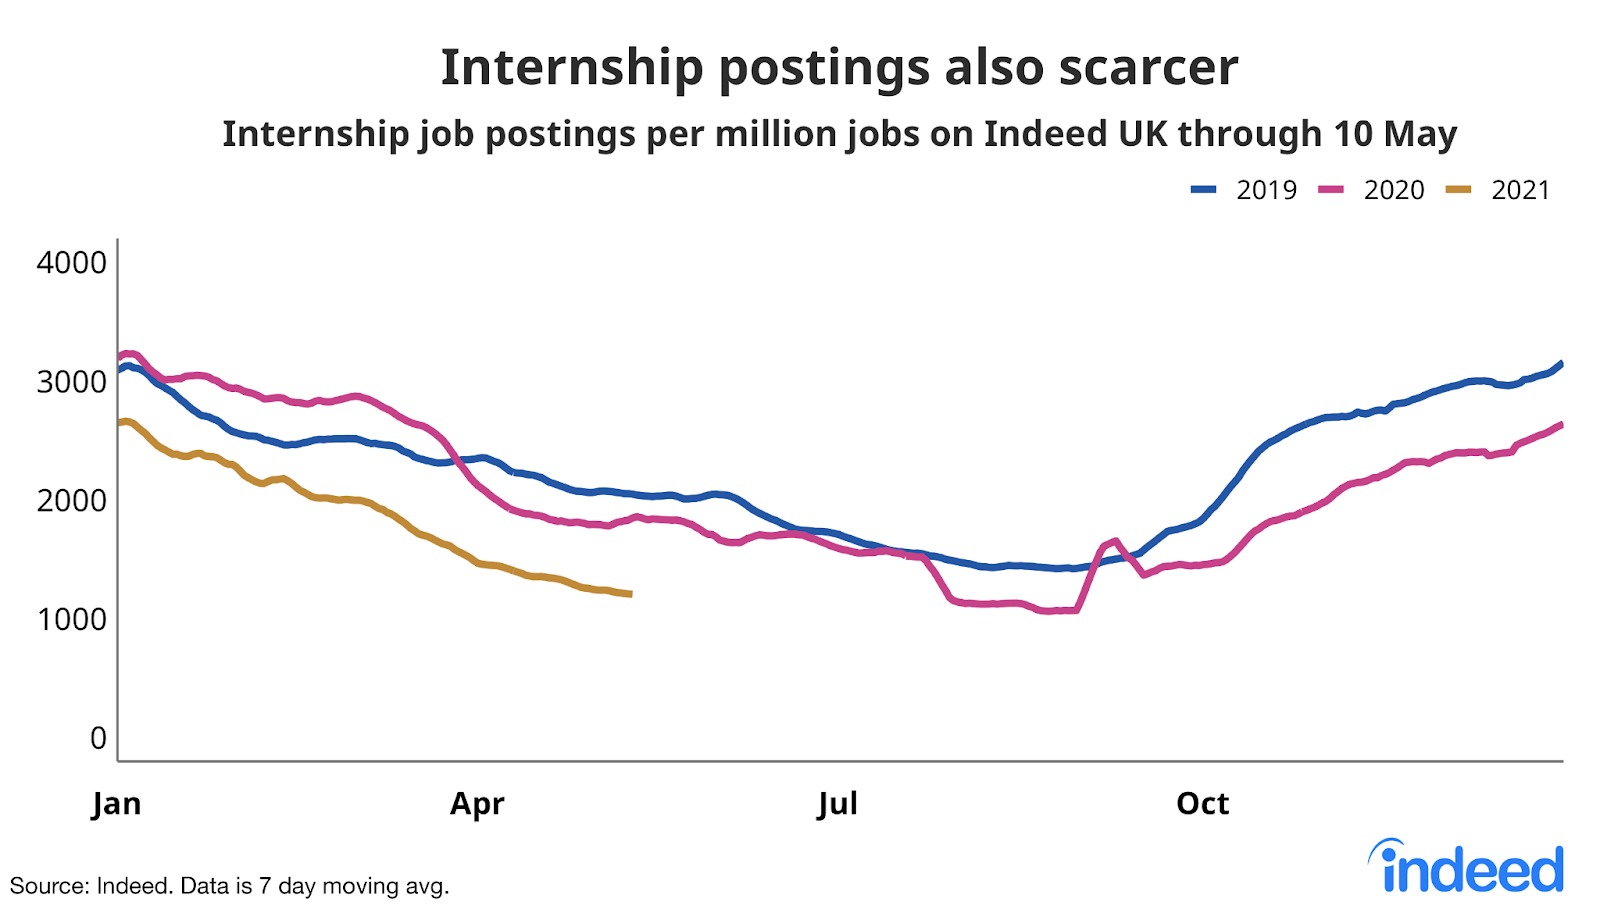 Line graph showing internship postings also scarcer